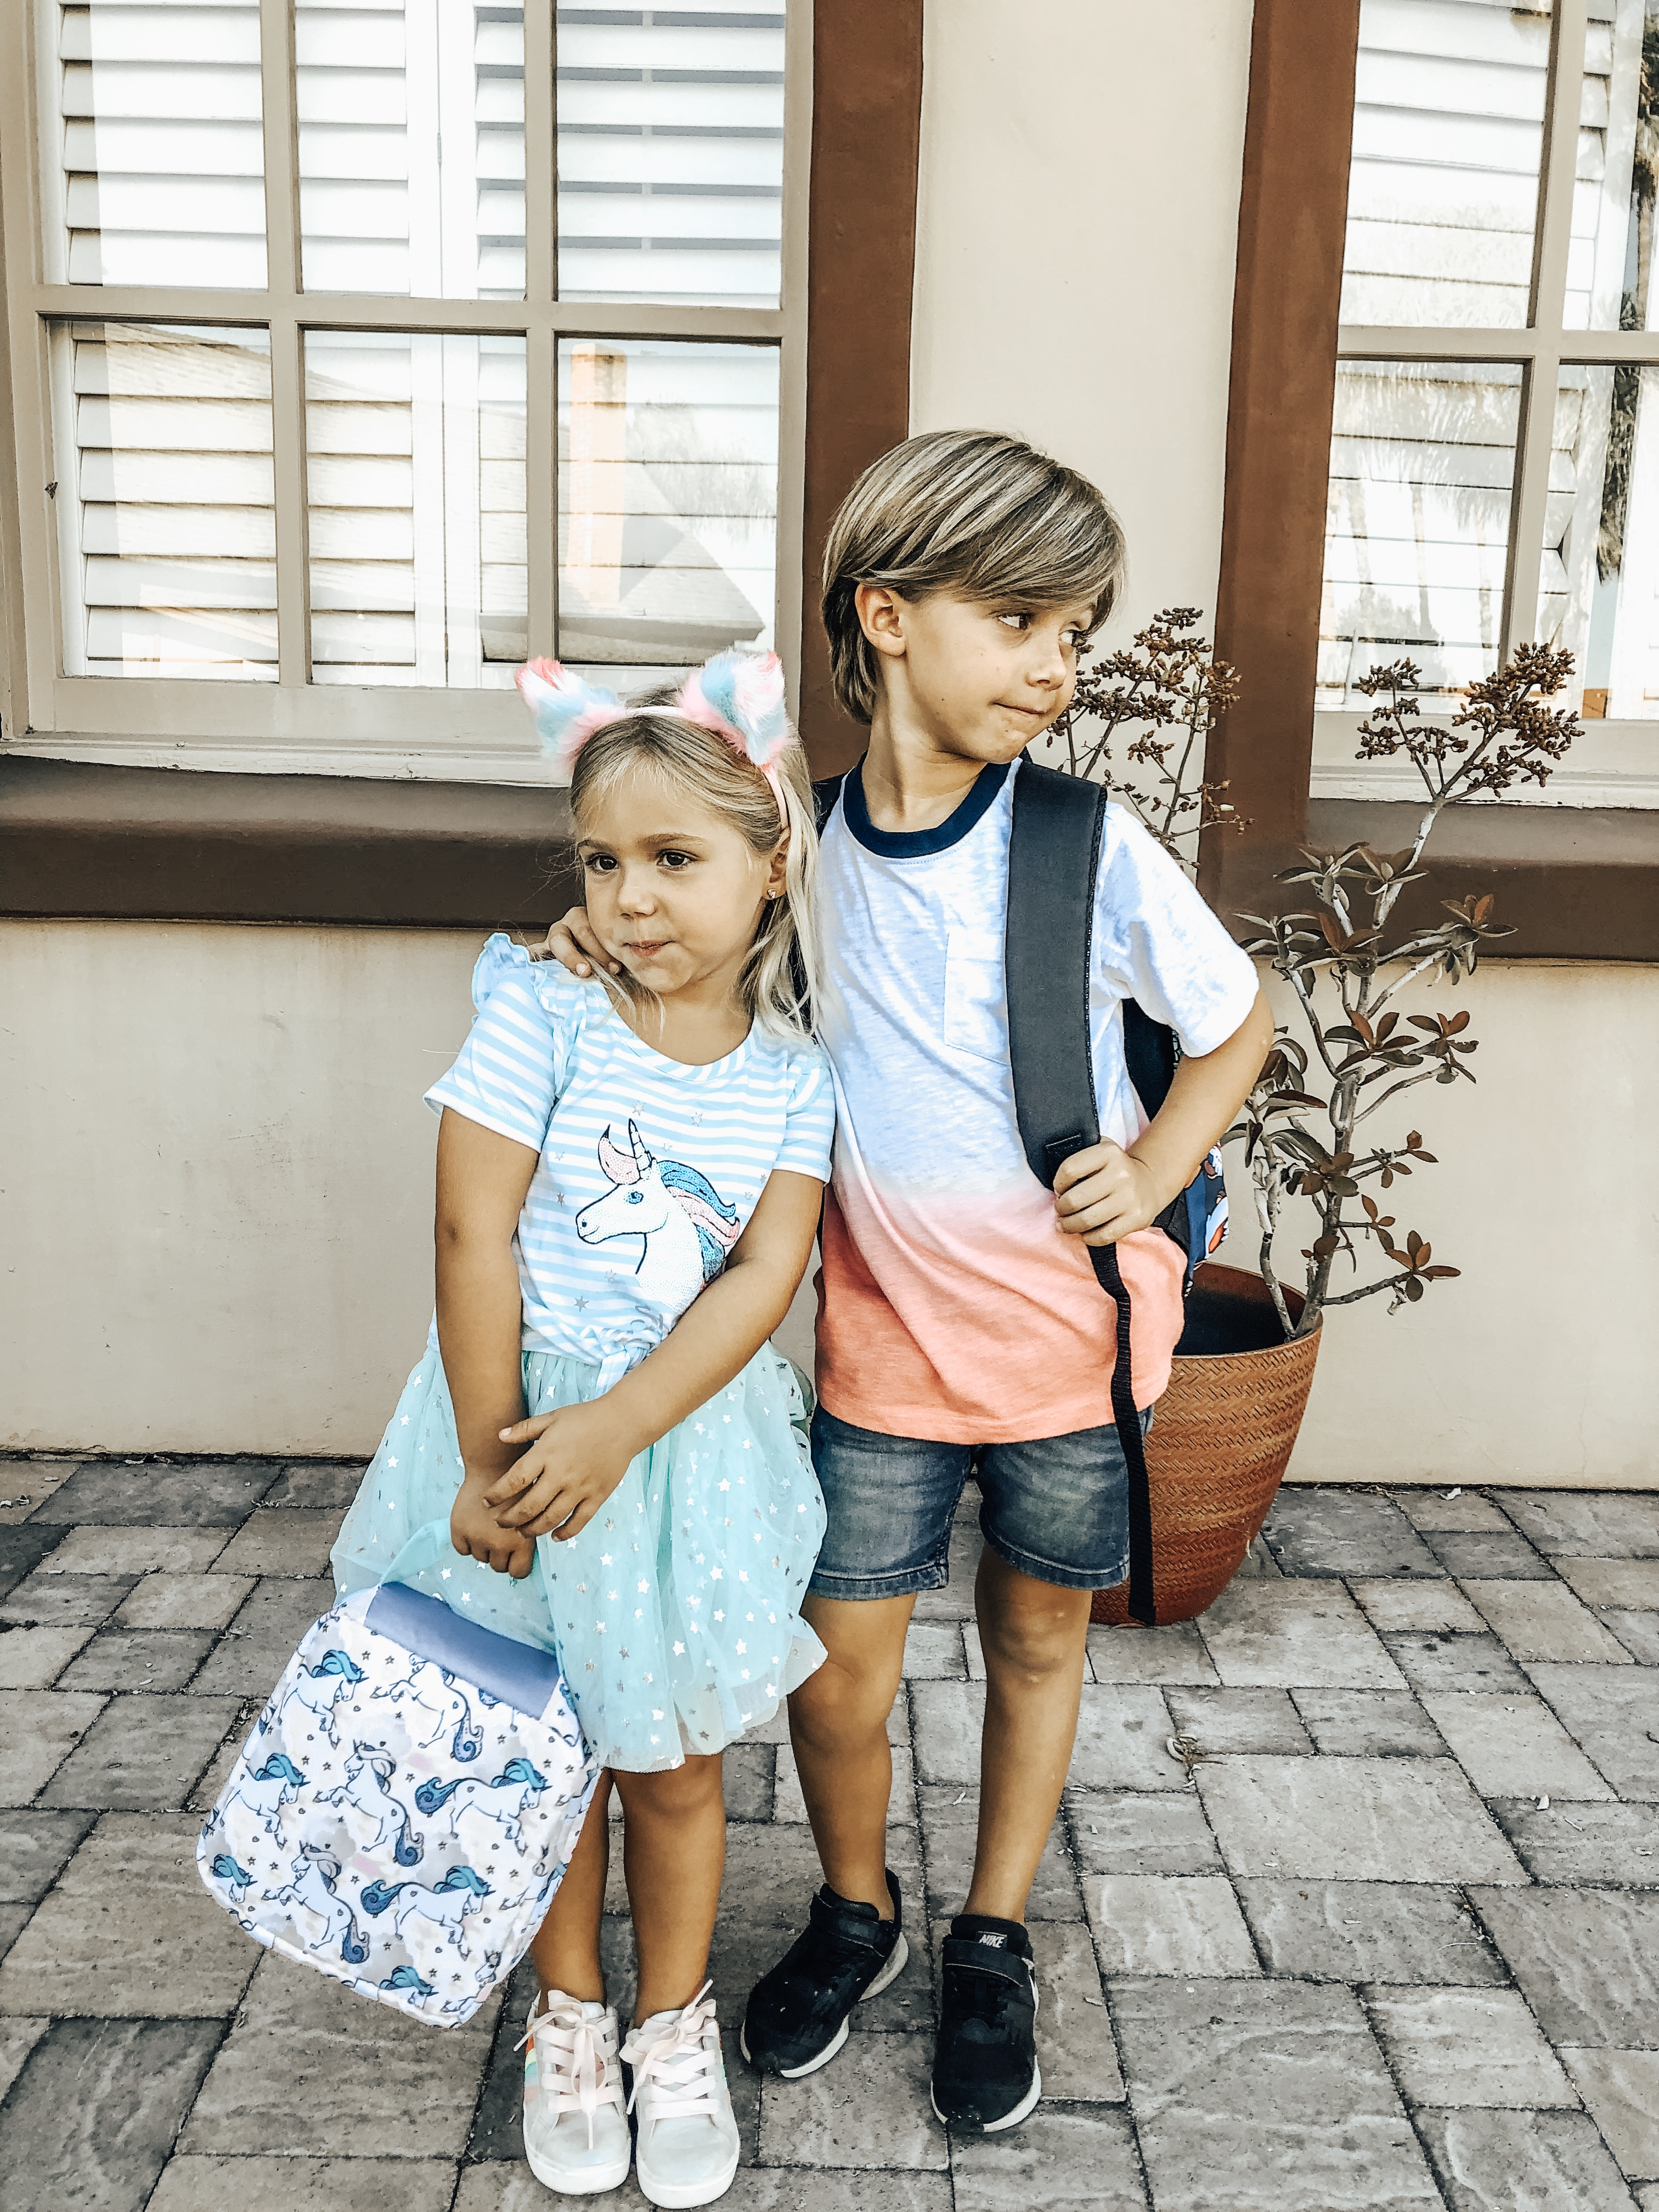 BACK TO SCHOOL WITH WALMART- Jaclyn De Leon Style= The kids are heading back to school and I'm sharing all the must have's from backpacks and lunches to kid style. And everything is affordable and a one stop shop from Walmart.